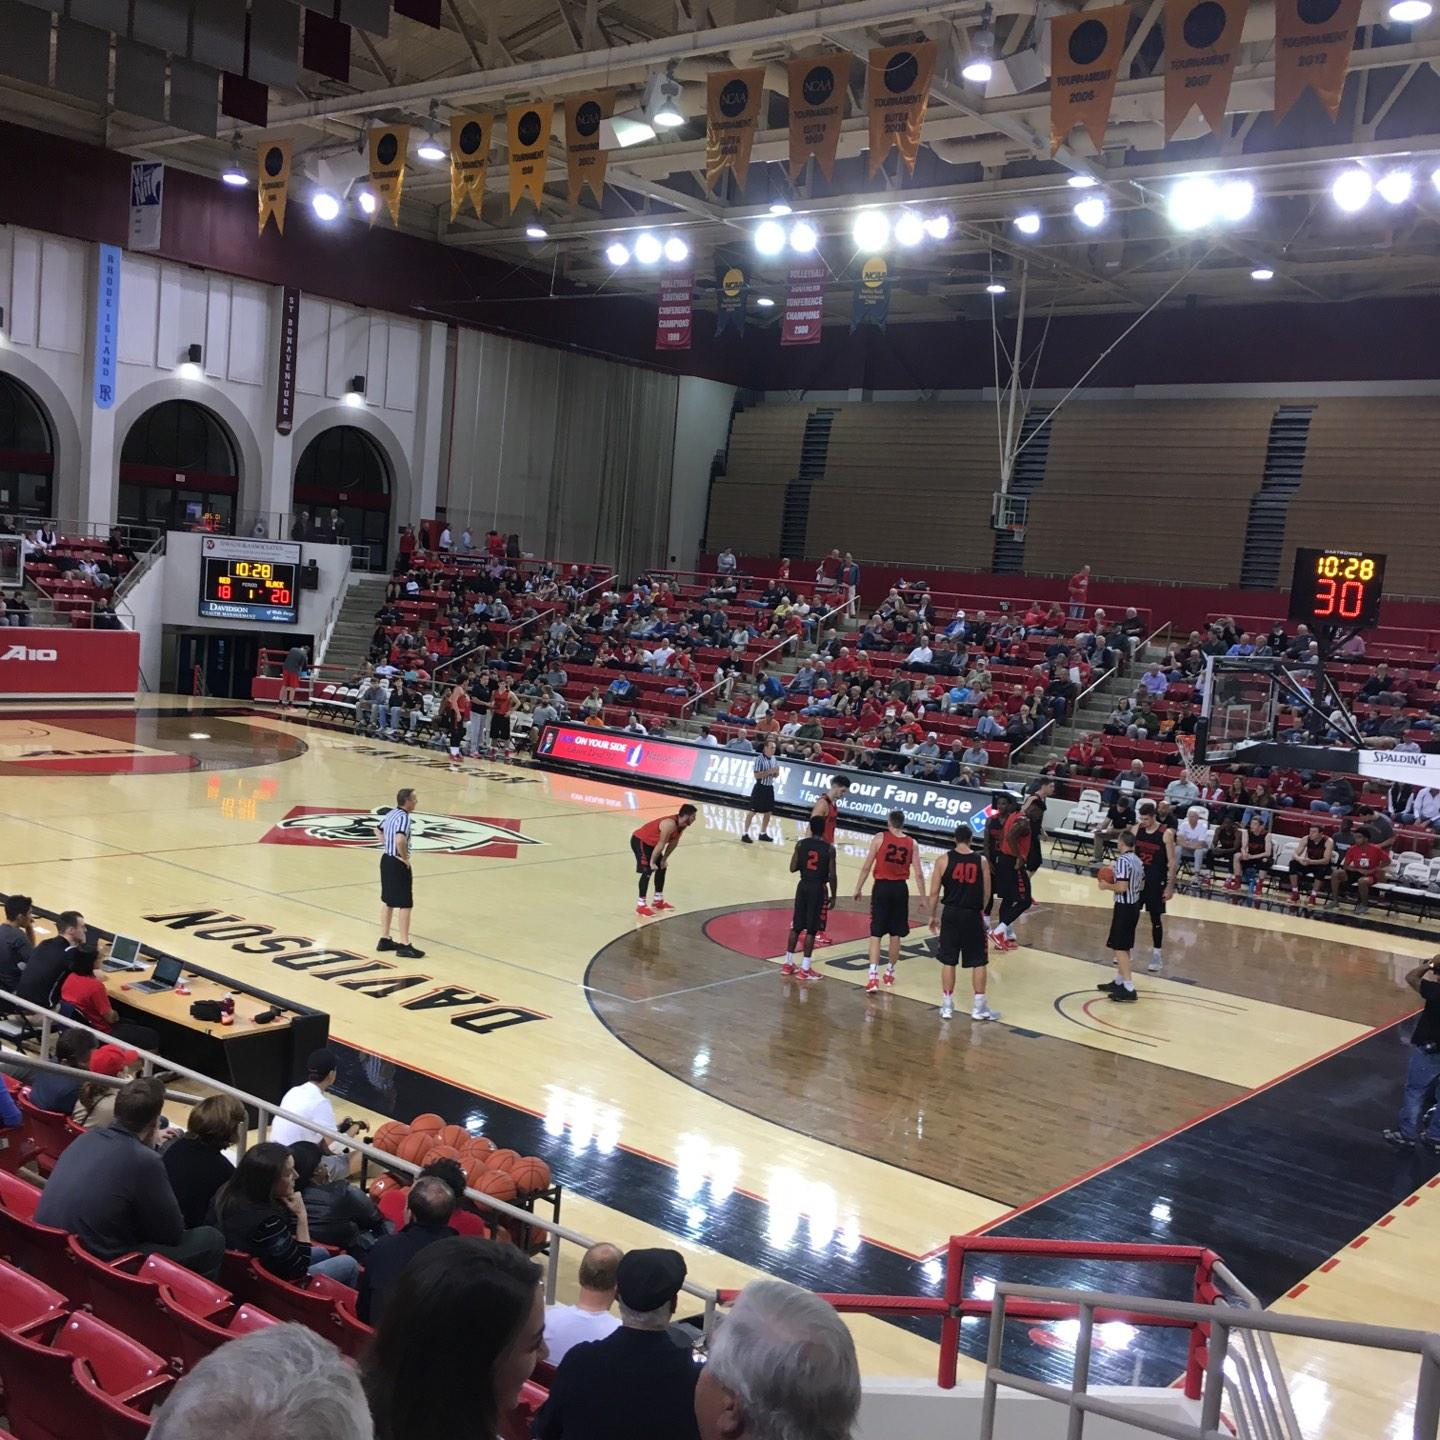 John M. Belk Arena Section 17 Row E Seat 1